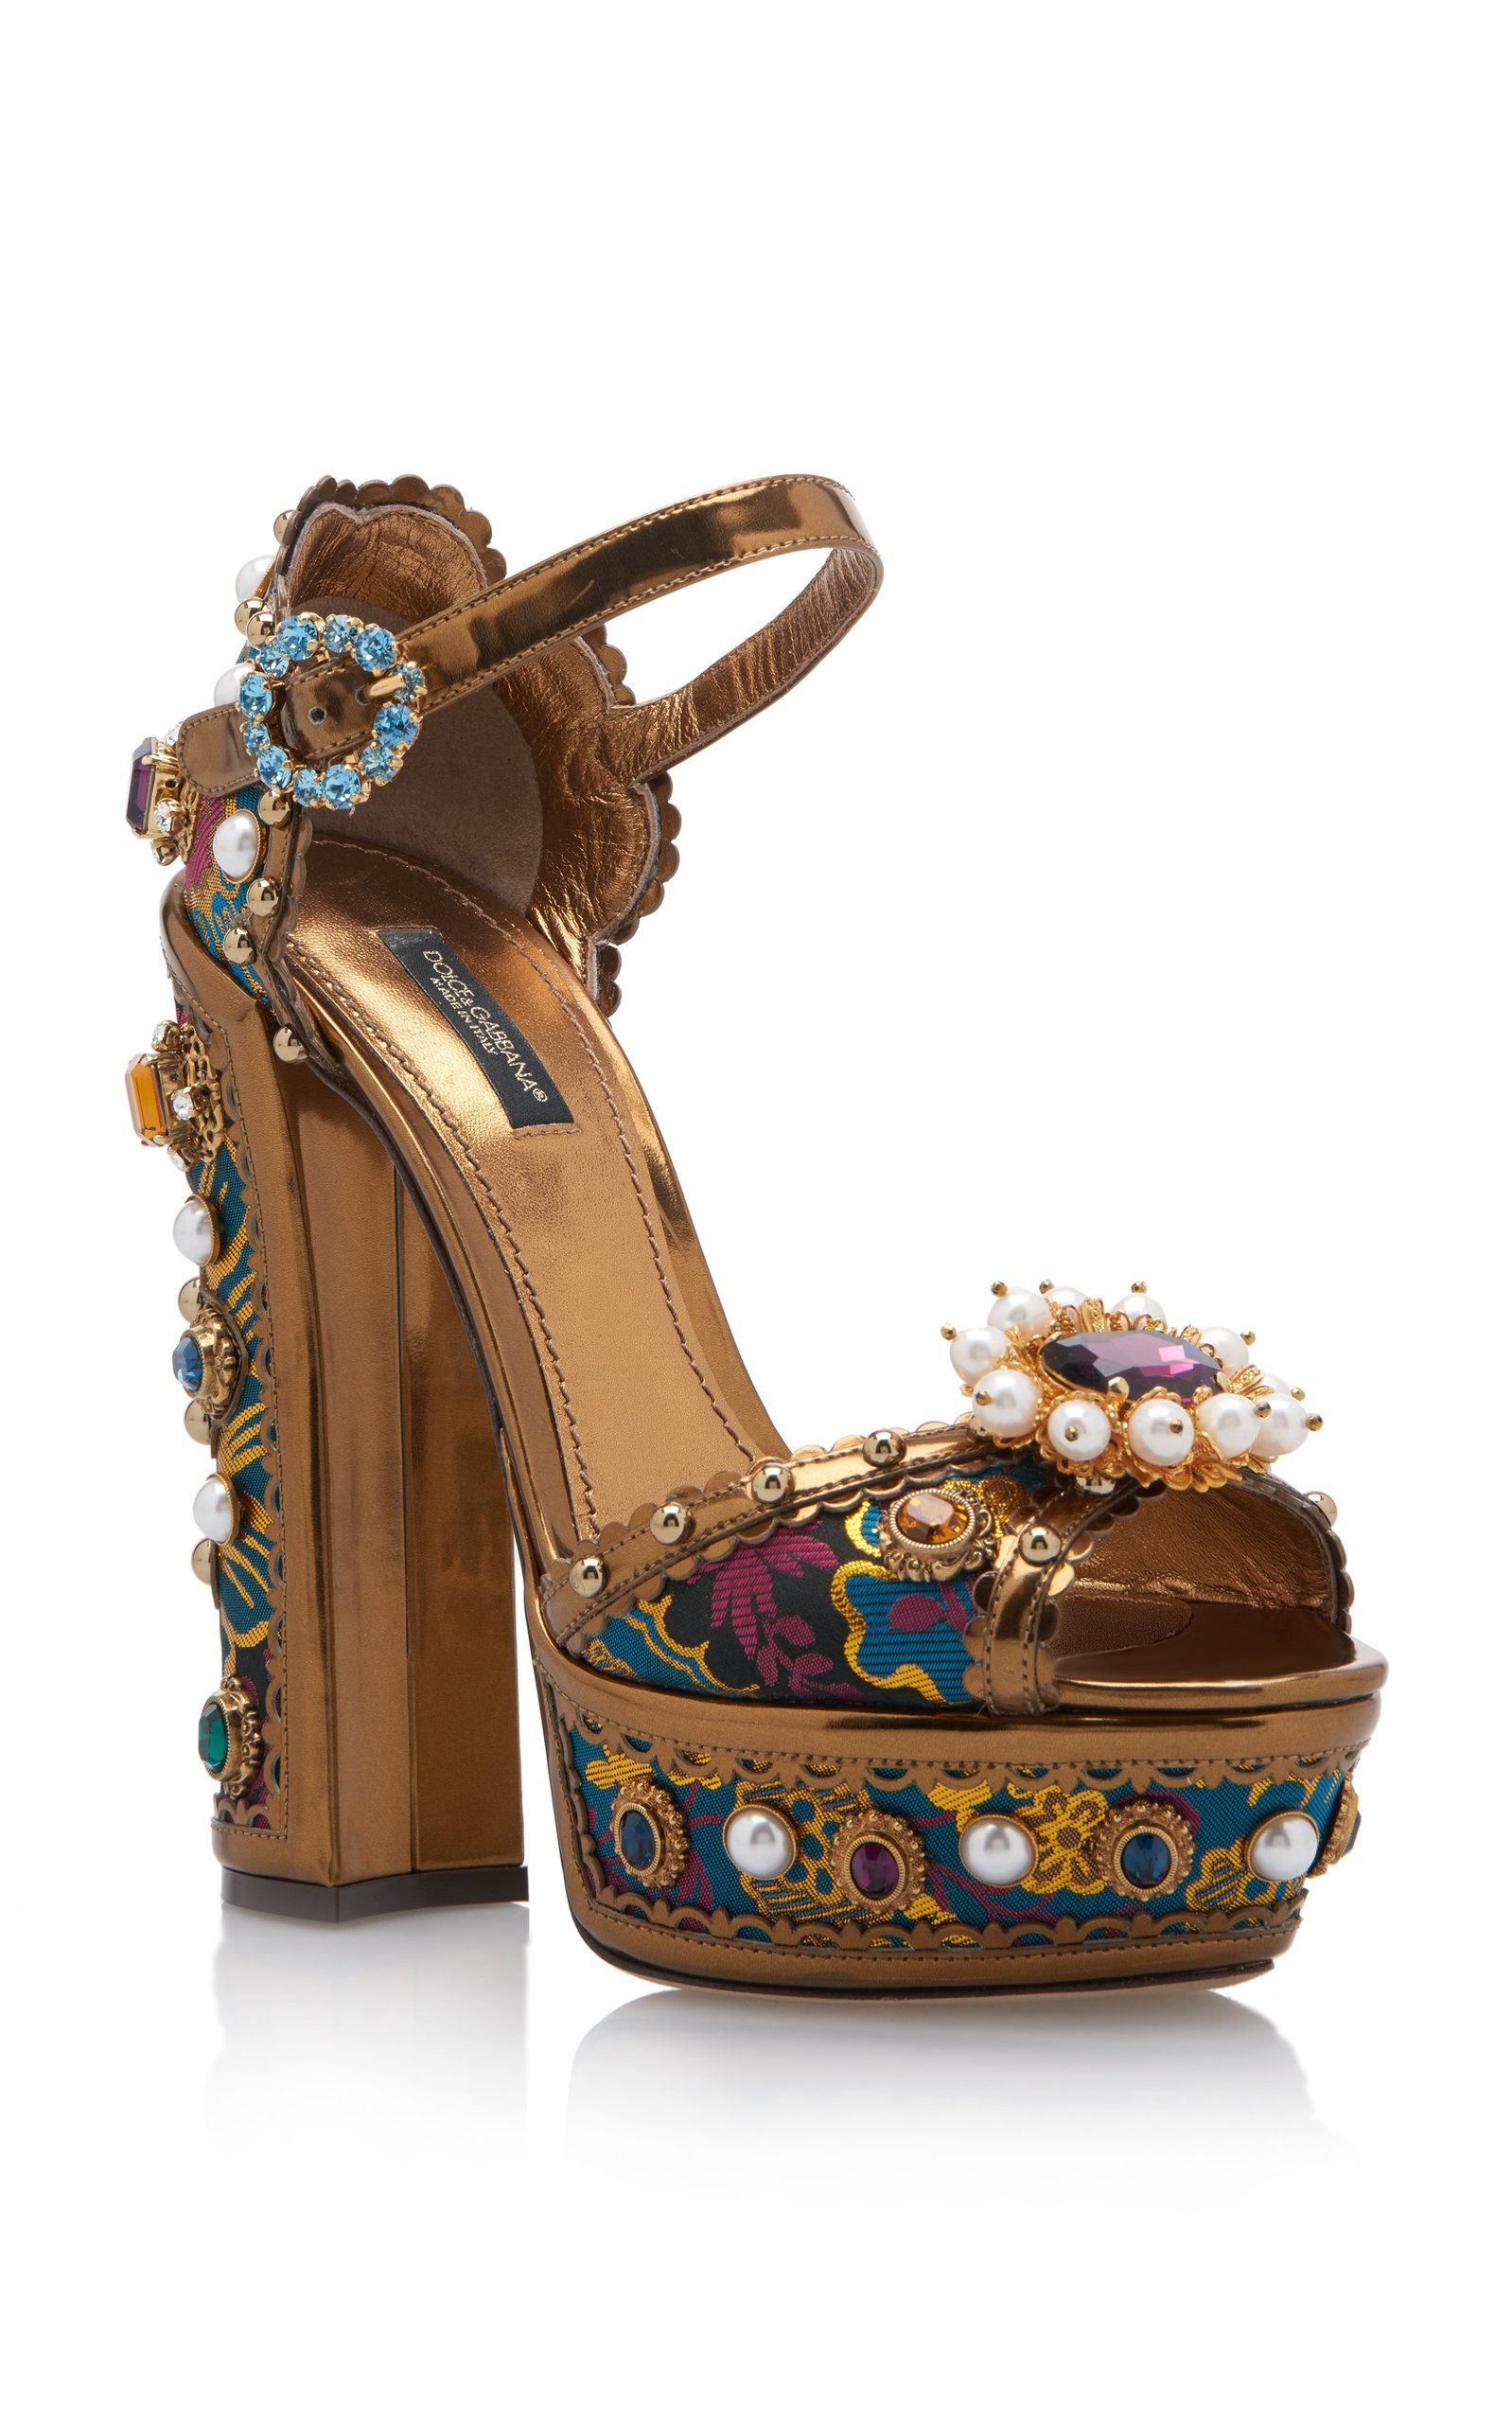 b91d5e04 Jewel-Embellished Metallic Leather Platform Sandals by DOLCE & GABBANA  Now Available on Moda